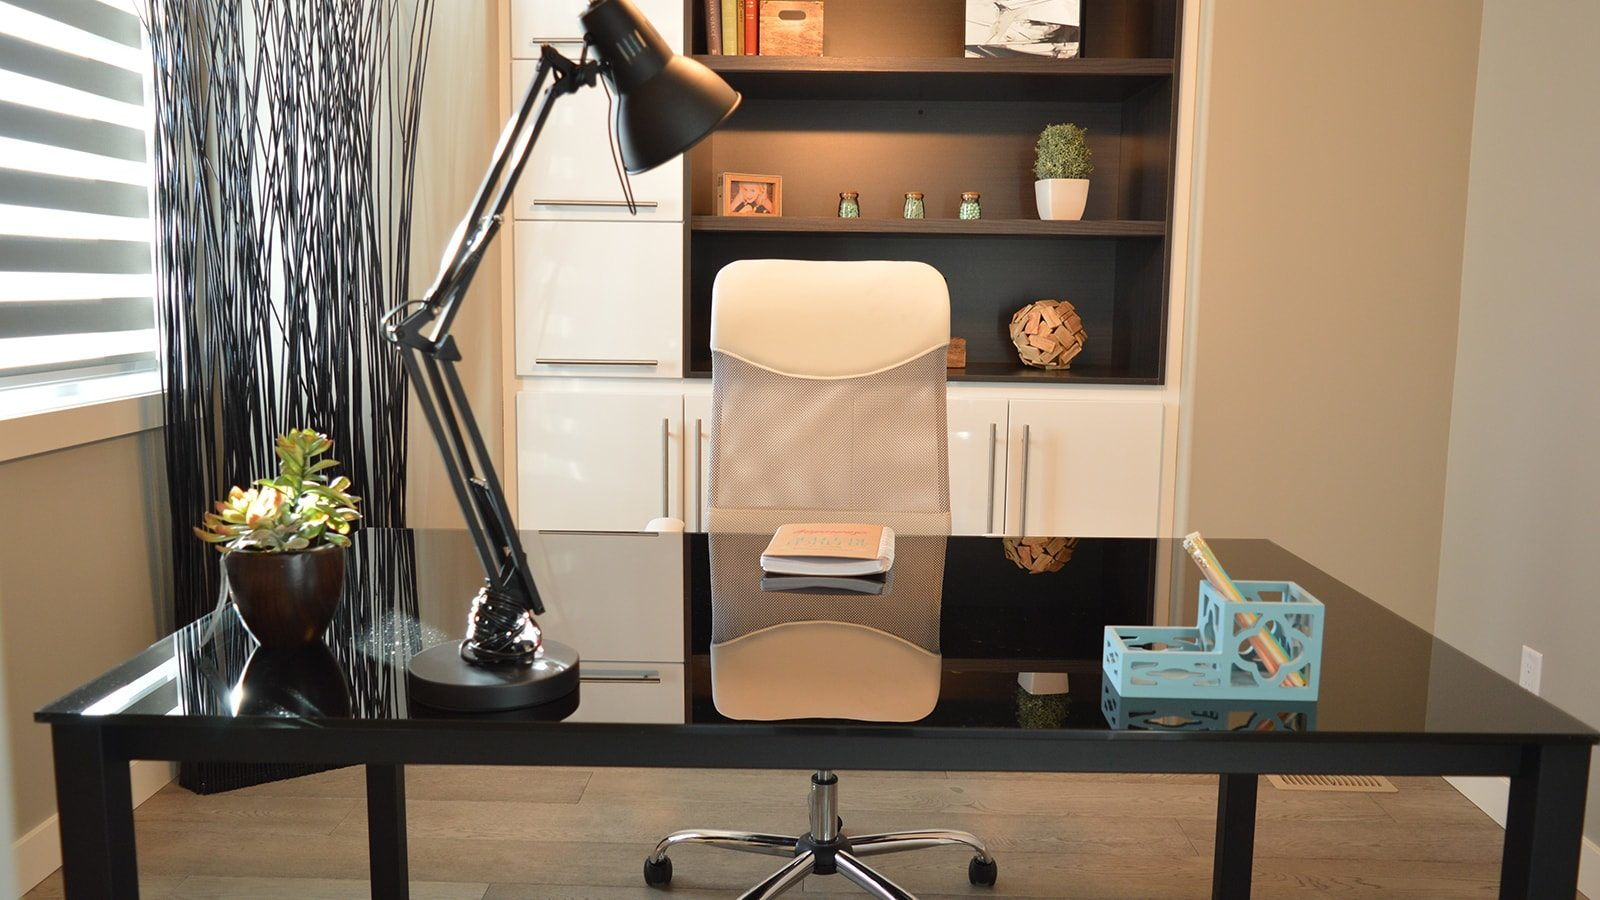 Cool Ideas for Home Offices in Small Apartments that You Probably Didn't Think Of